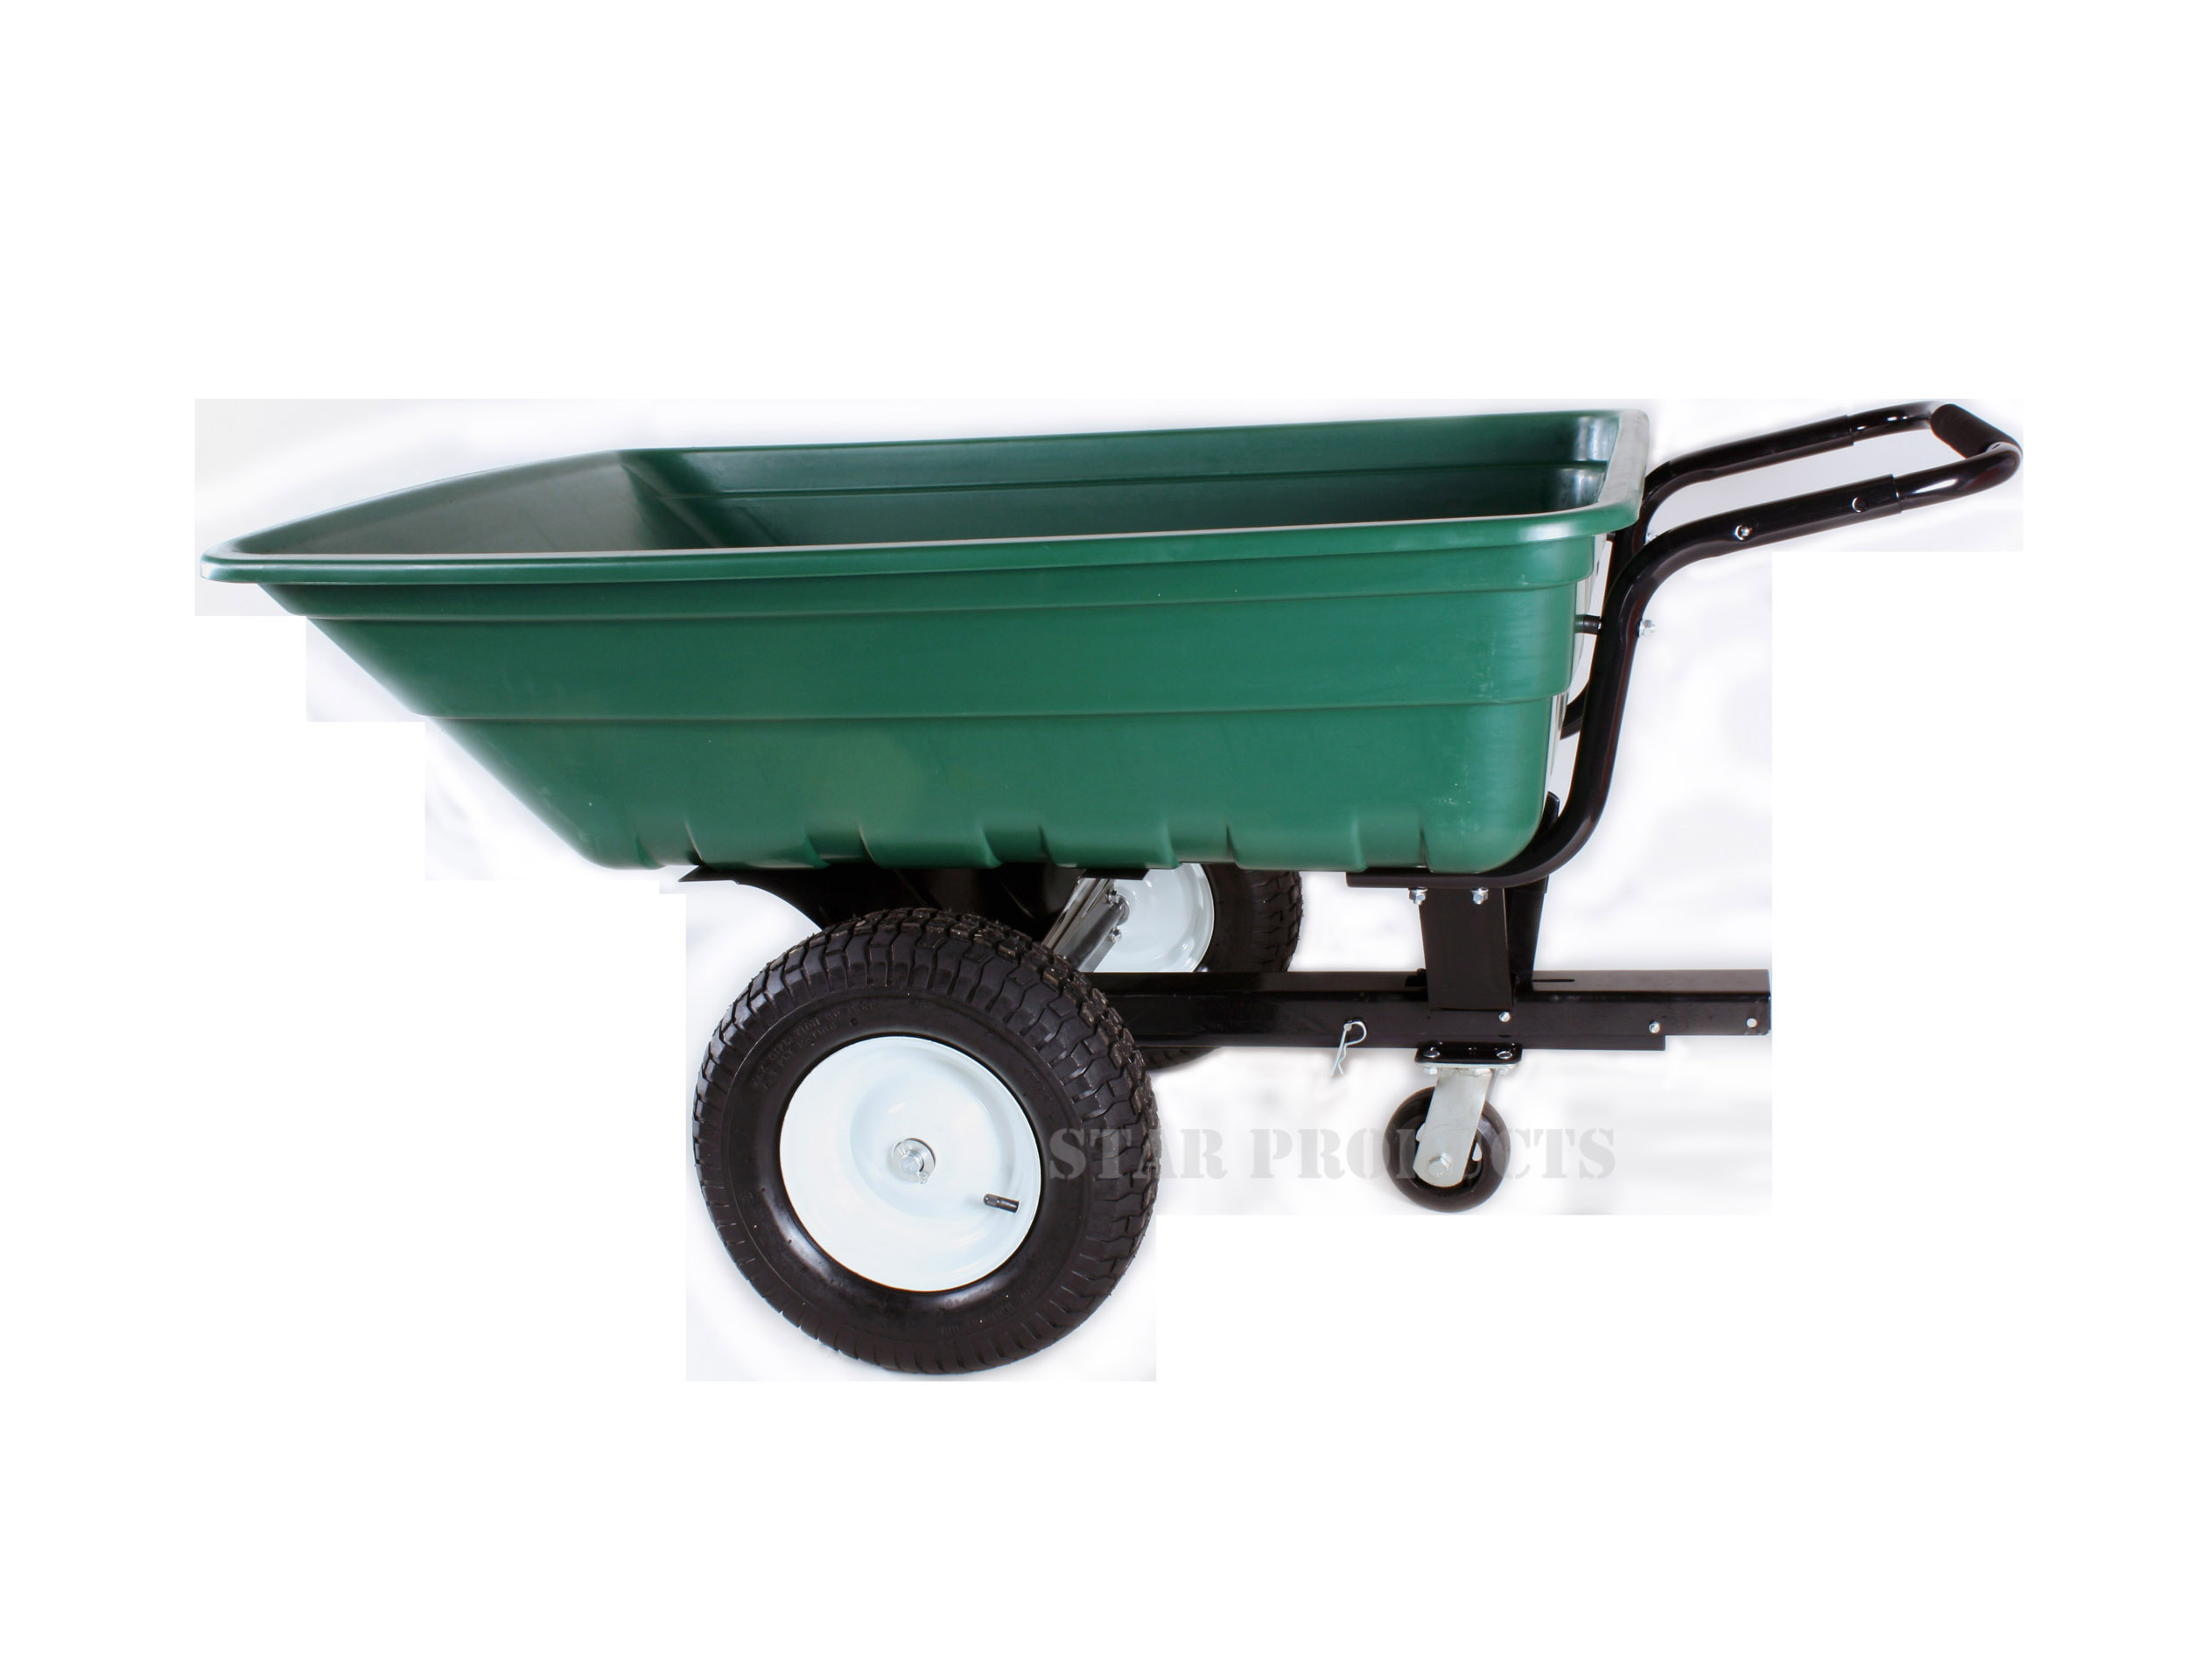 asp cart enlarge large lg trailer with gb image load thlgt garden less max wheels product puncture